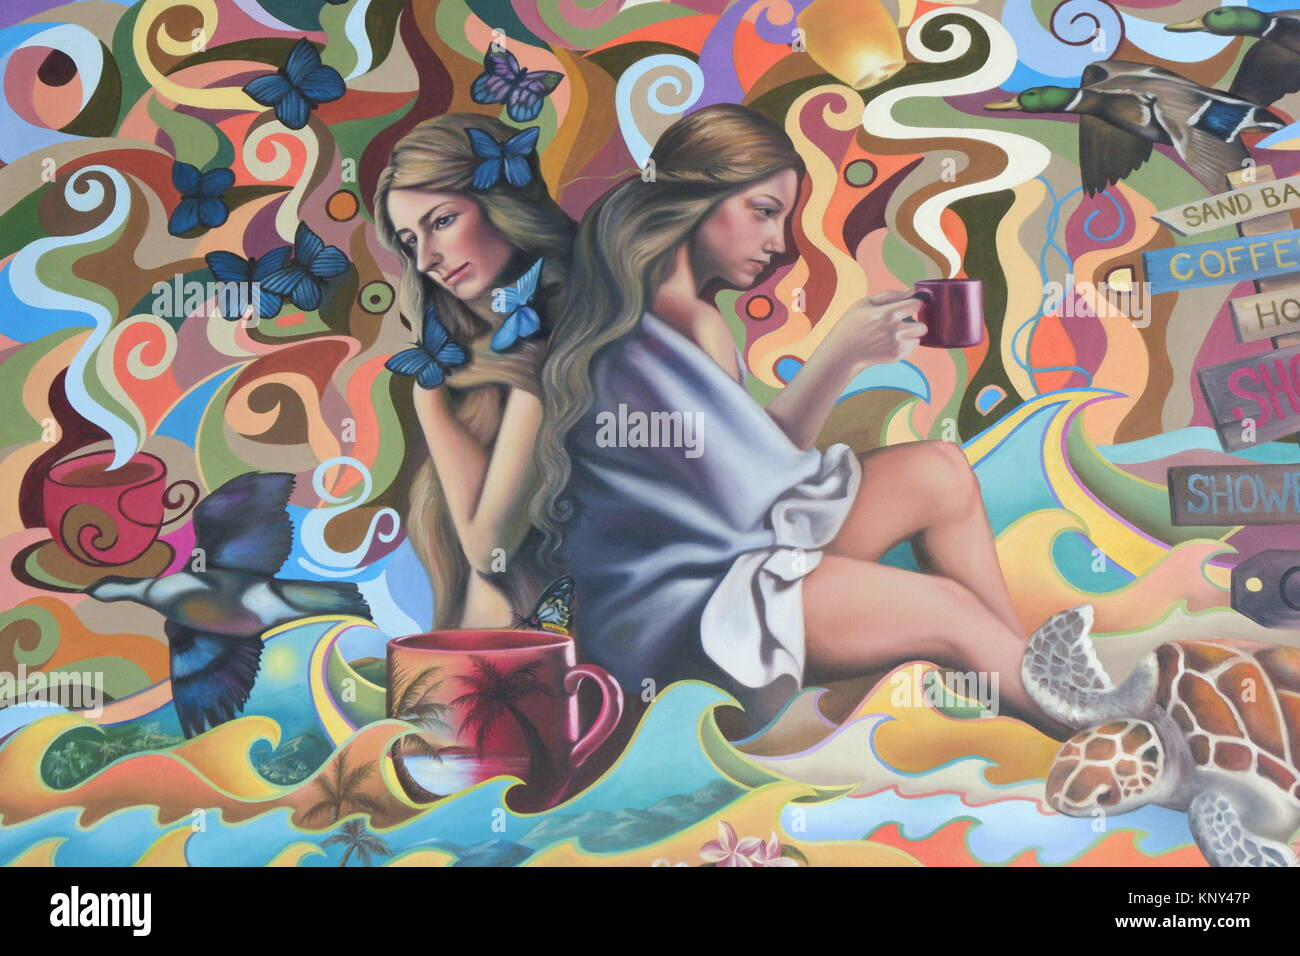 A Painting of a woman on the wall - Stock Image